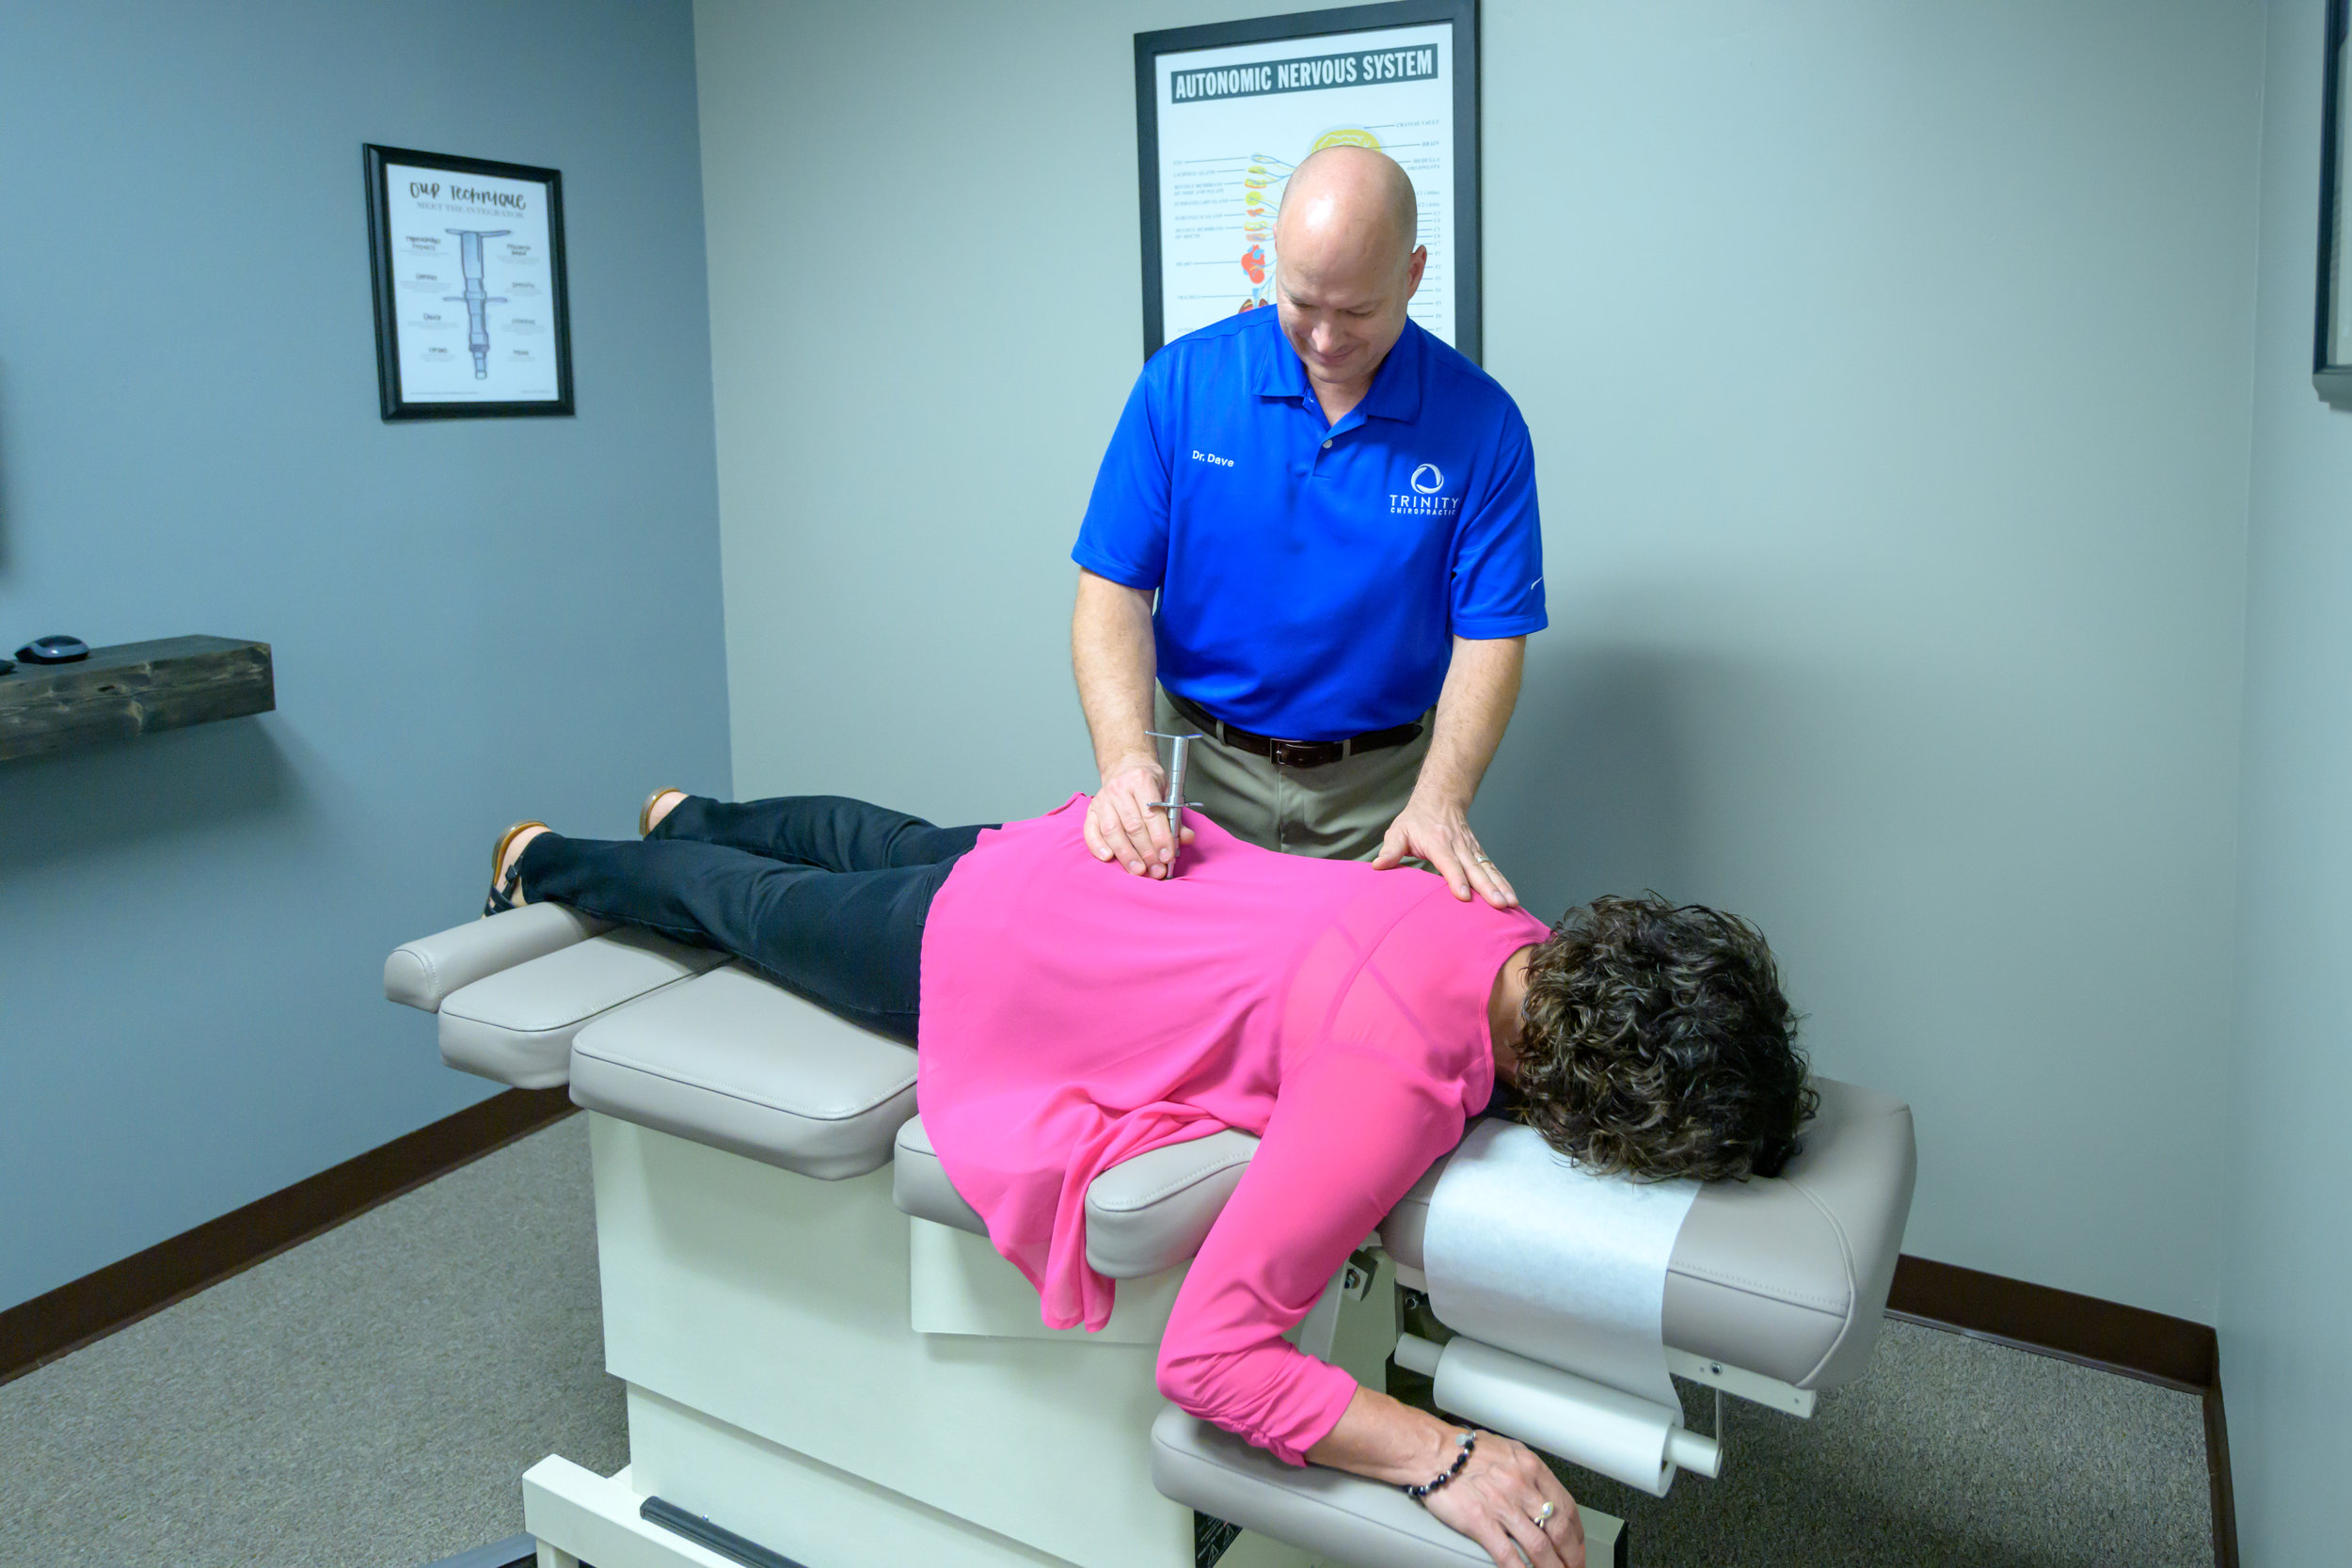 """Torque Release TechniqUe - Dr. David Iszler has Certified Advanced Proficiency in Torque Release Technique, which has been proven through research to be one of the most specific and scientific chiropractic techniques in the world. Torque Release Technique is the first chiropractic technique of the new millennium and provides patients of all ages with some of the most gentle, specific and reproducible chiropractic adjustments available. Never in the history of chiropractic have we been able to provide the level of help and expertise that now exists.Torque Release Technique has been designed as part of scientific research into the health benefits of chiropractic. It is a mixture of the """"best-of-the-best"""" systems of chiropractic assessment and care. Torque Release bases its technique on gentle, low force adjustment by using a handheld instrument called the Integrator. With the Integrator, adjustments can be delivered with the spine in a relaxed neutral position with the perfect amount of force. Patients enjoy the specific adjustment without the twisting, cracking and popping of traditional manual chiropractic adjustments."""